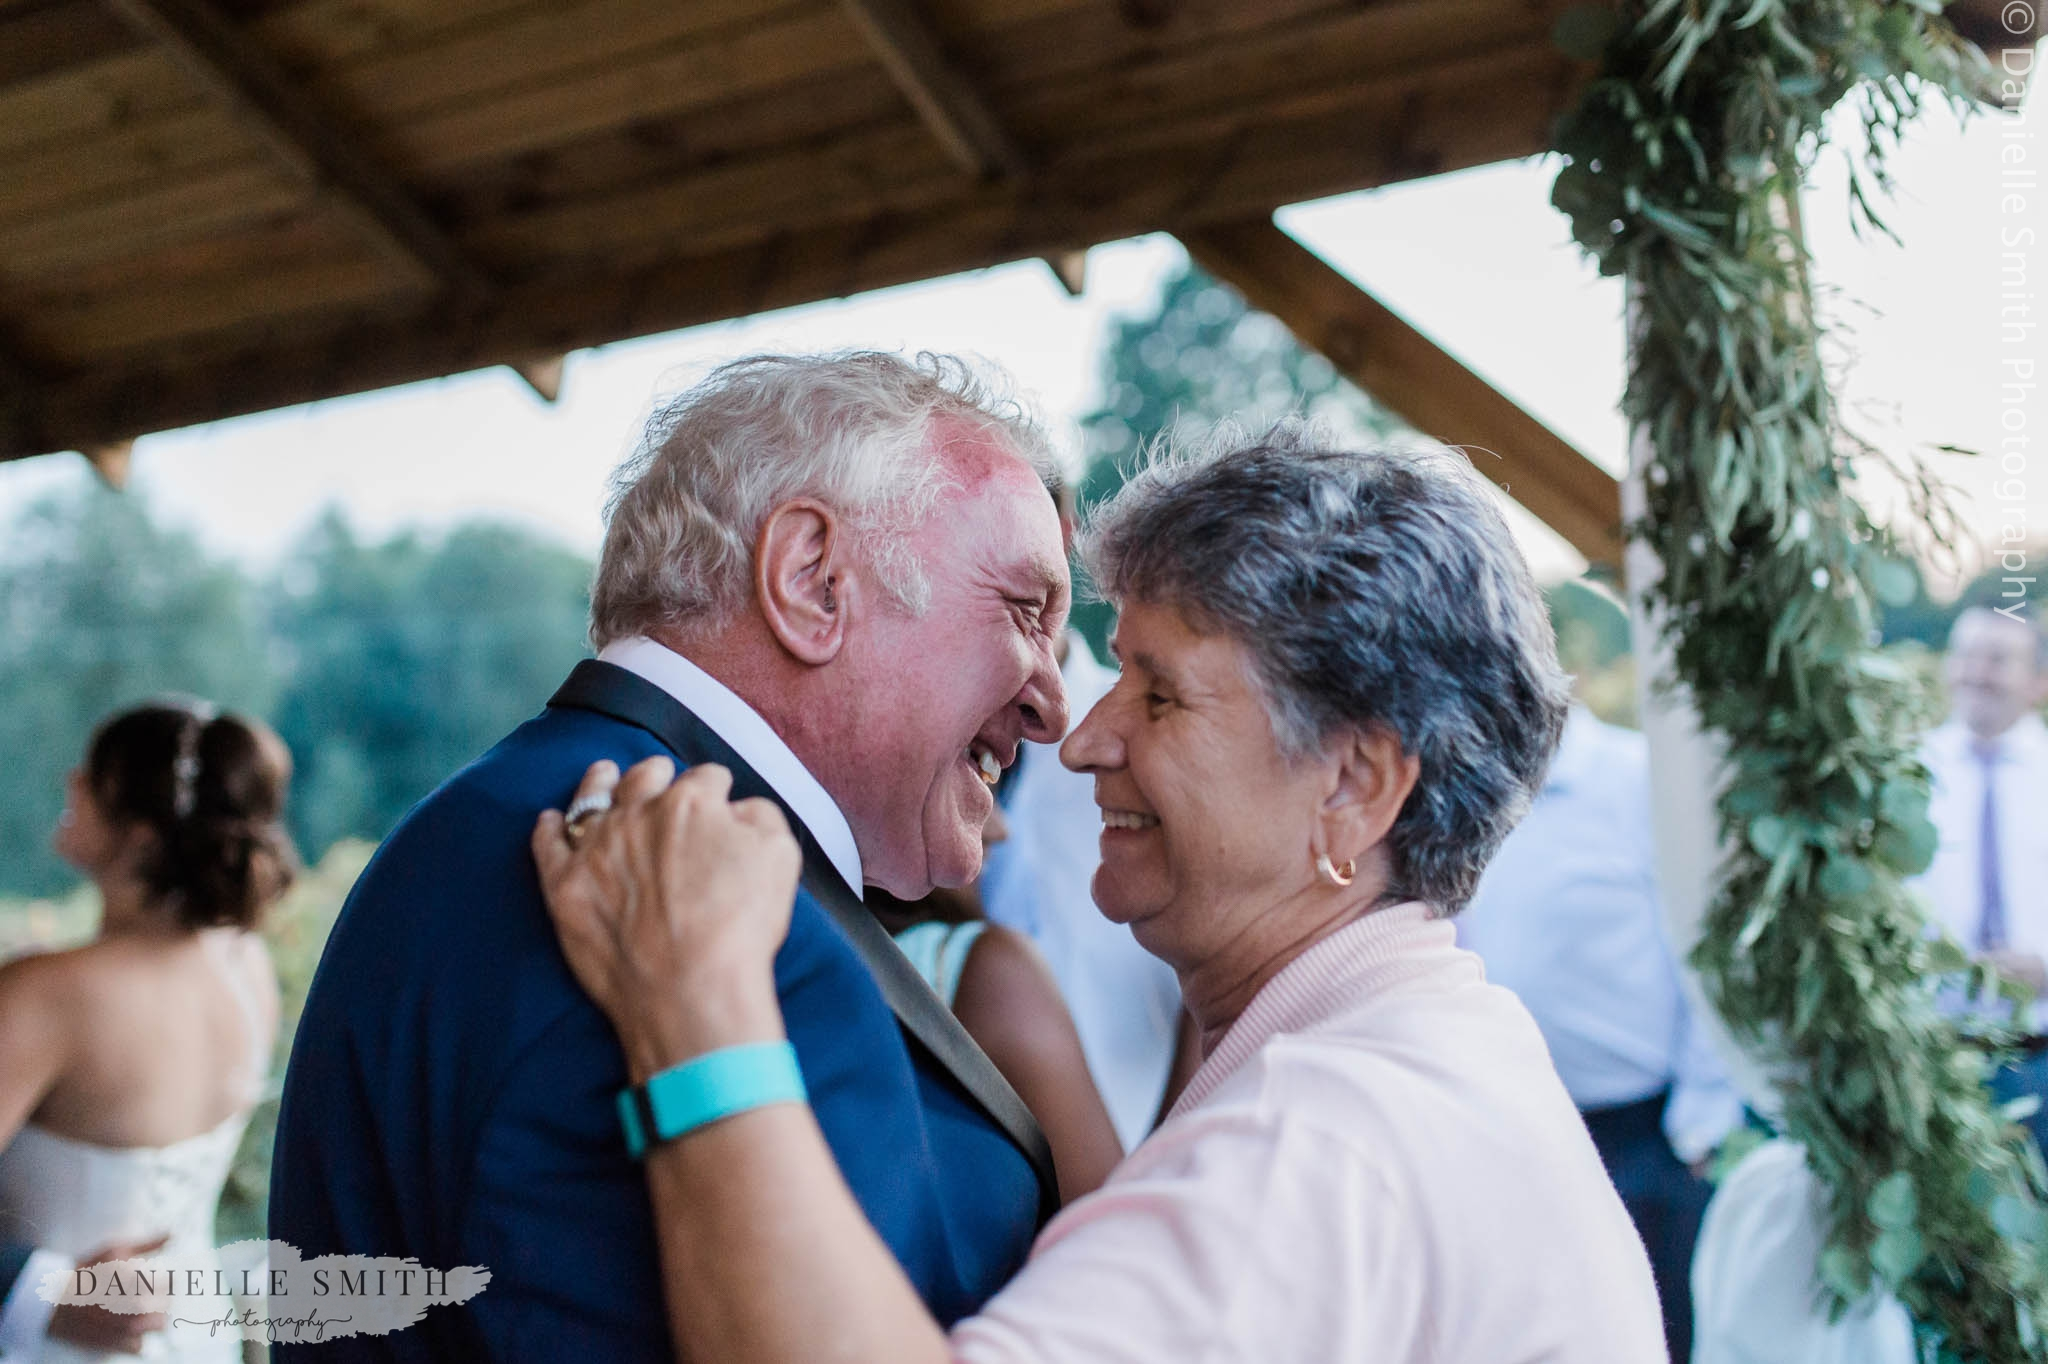 nan and granddad dancing at outdoor wedding